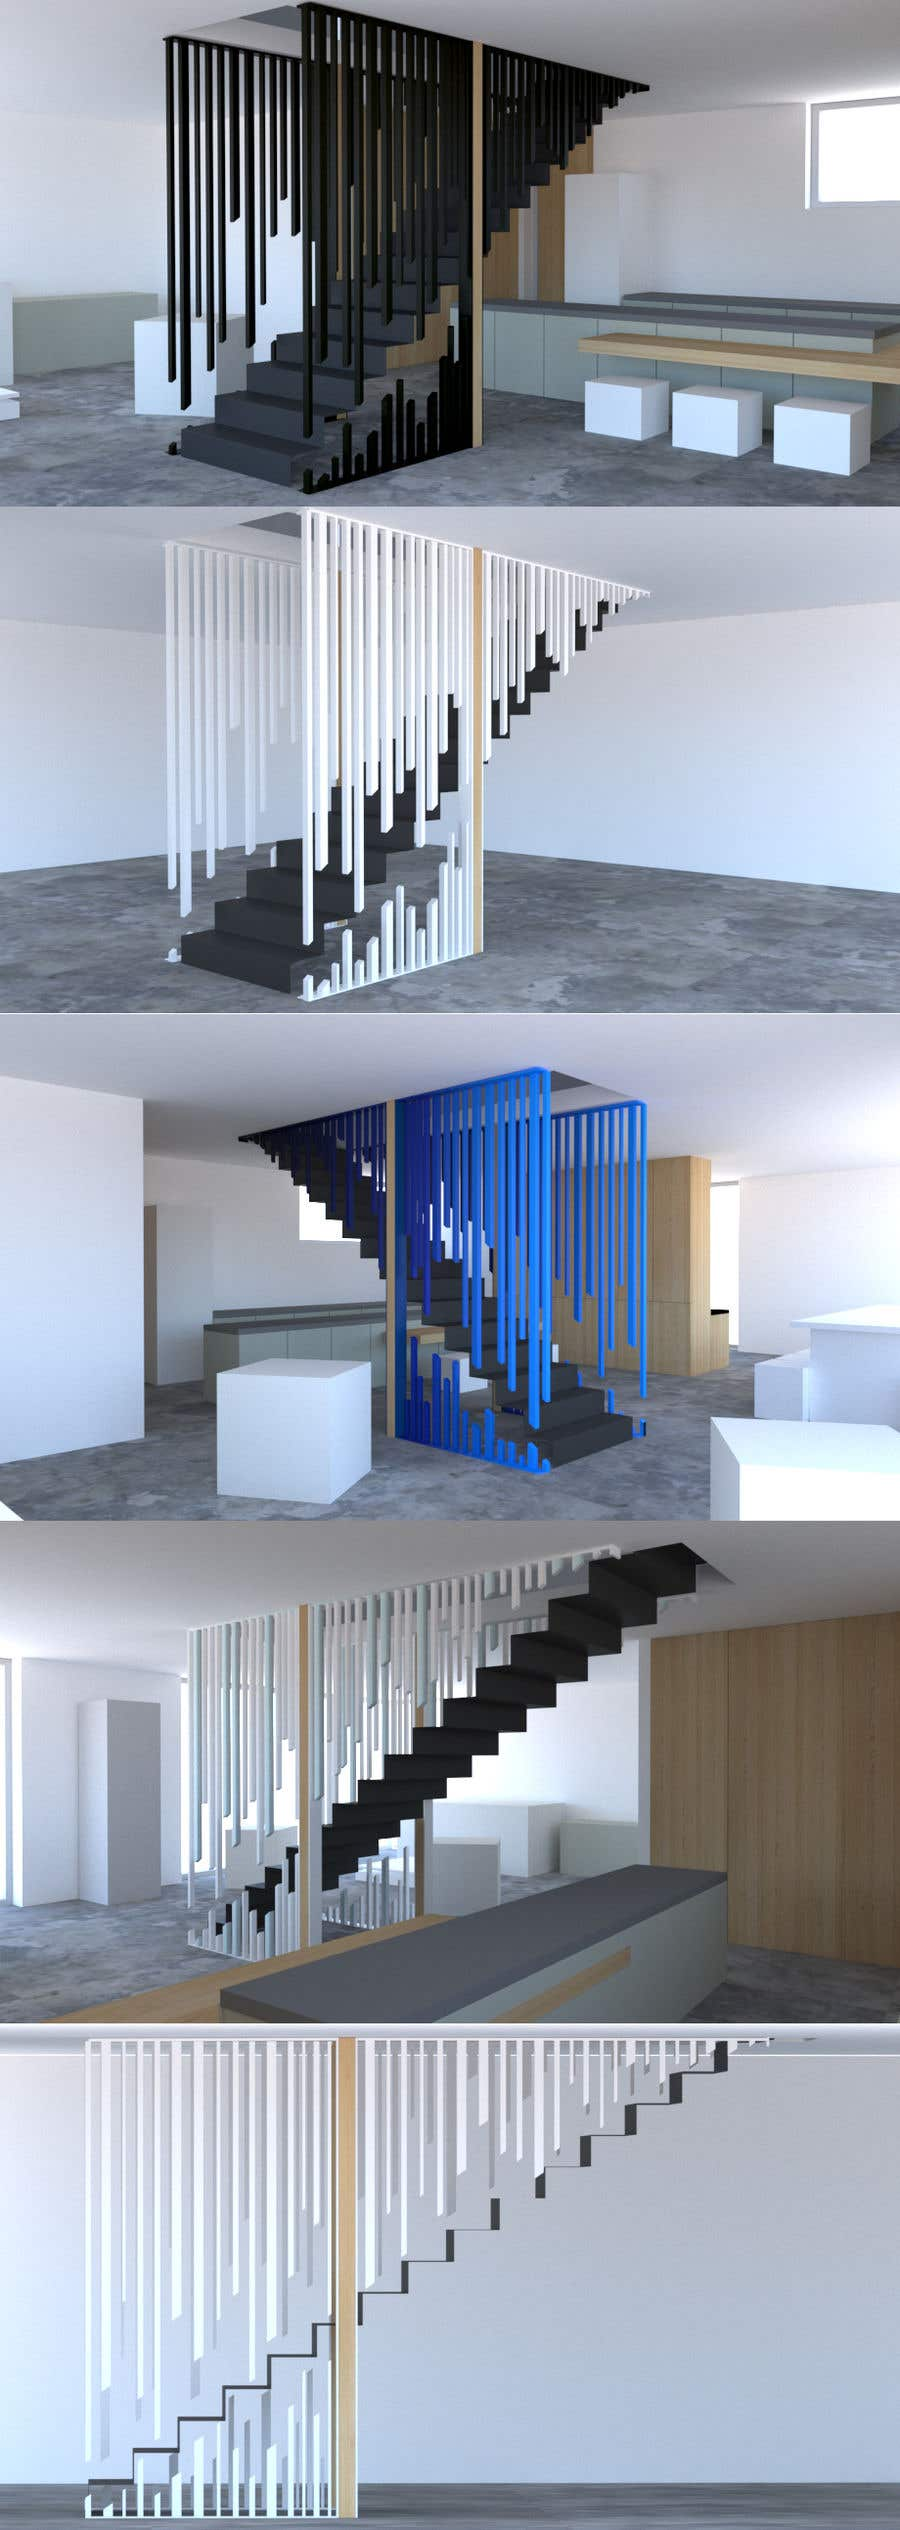 Proposition n°                                        32                                      du concours                                         Designing Staircase